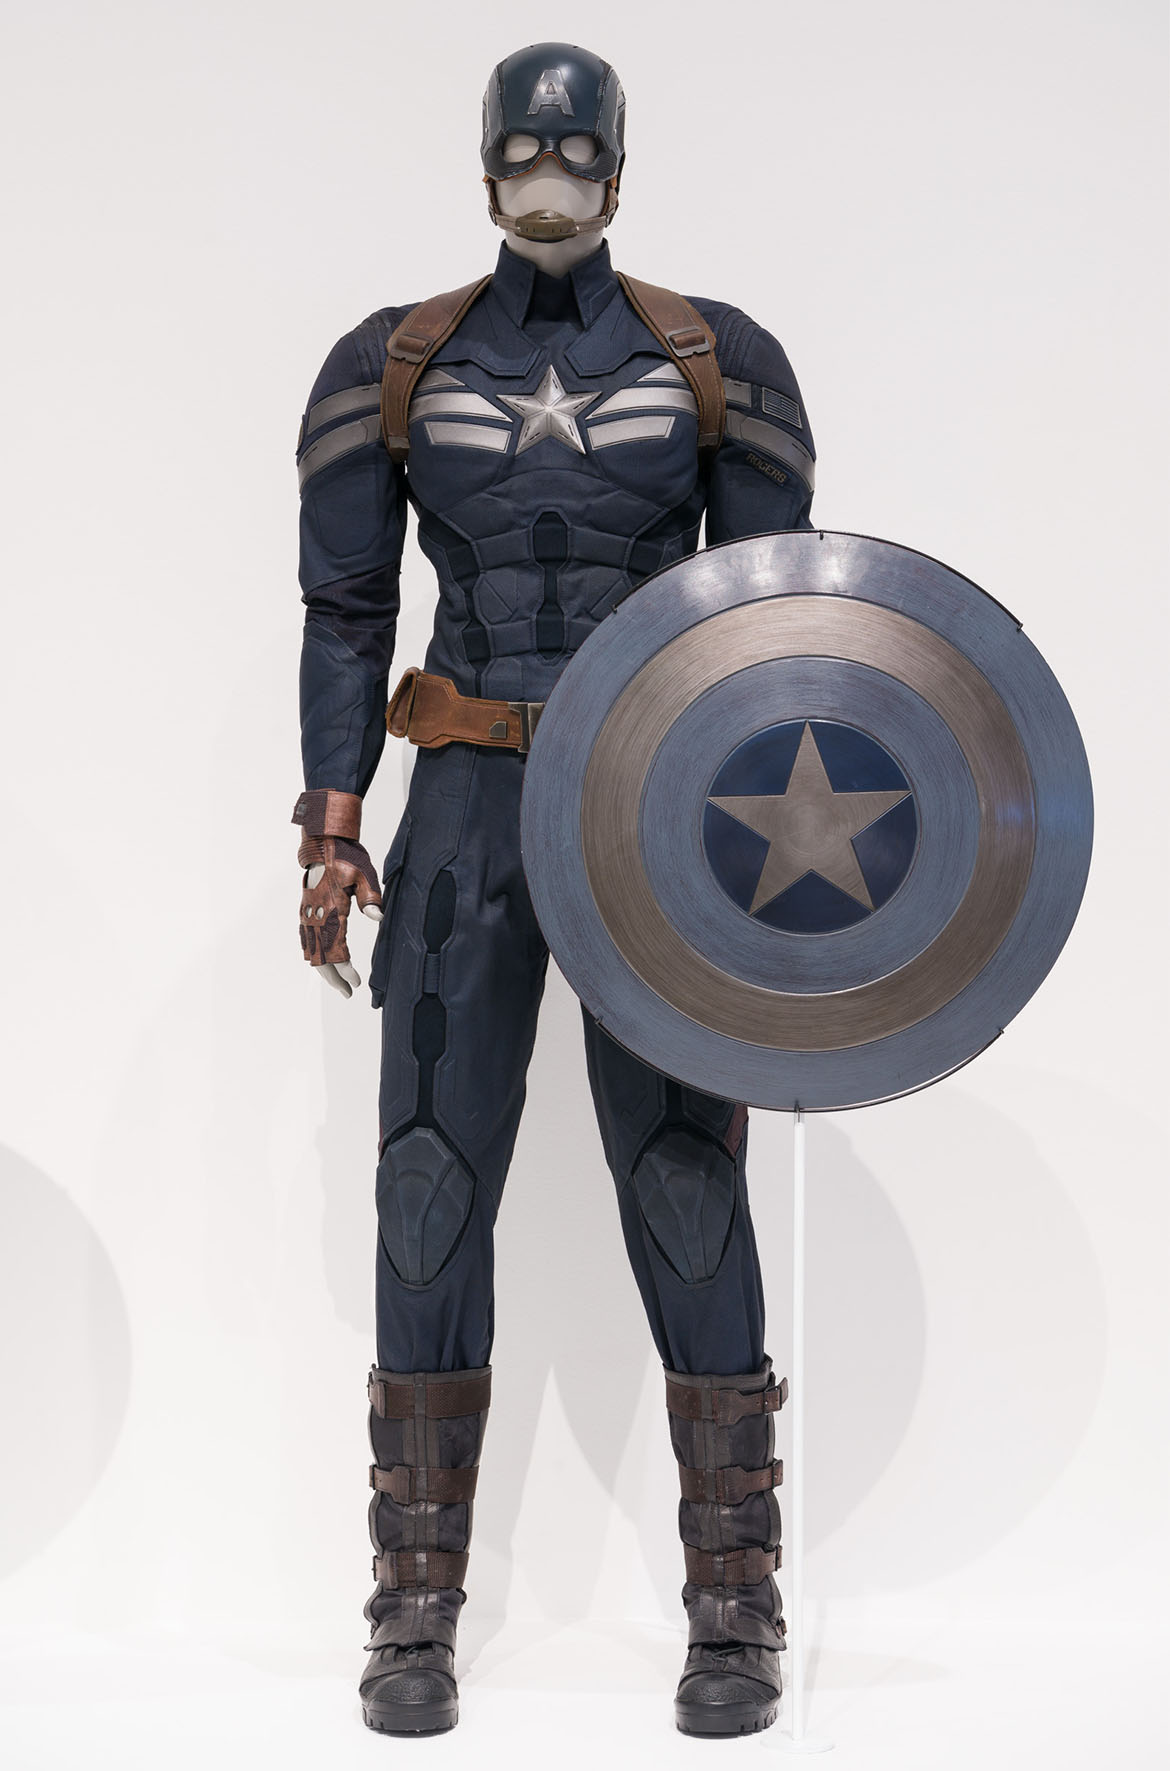 Installation view of Captain America's suit and shield, 'Captain America: Living legend' room, 'Marvel: Creating the Cinematic Universe', GOMA 2017